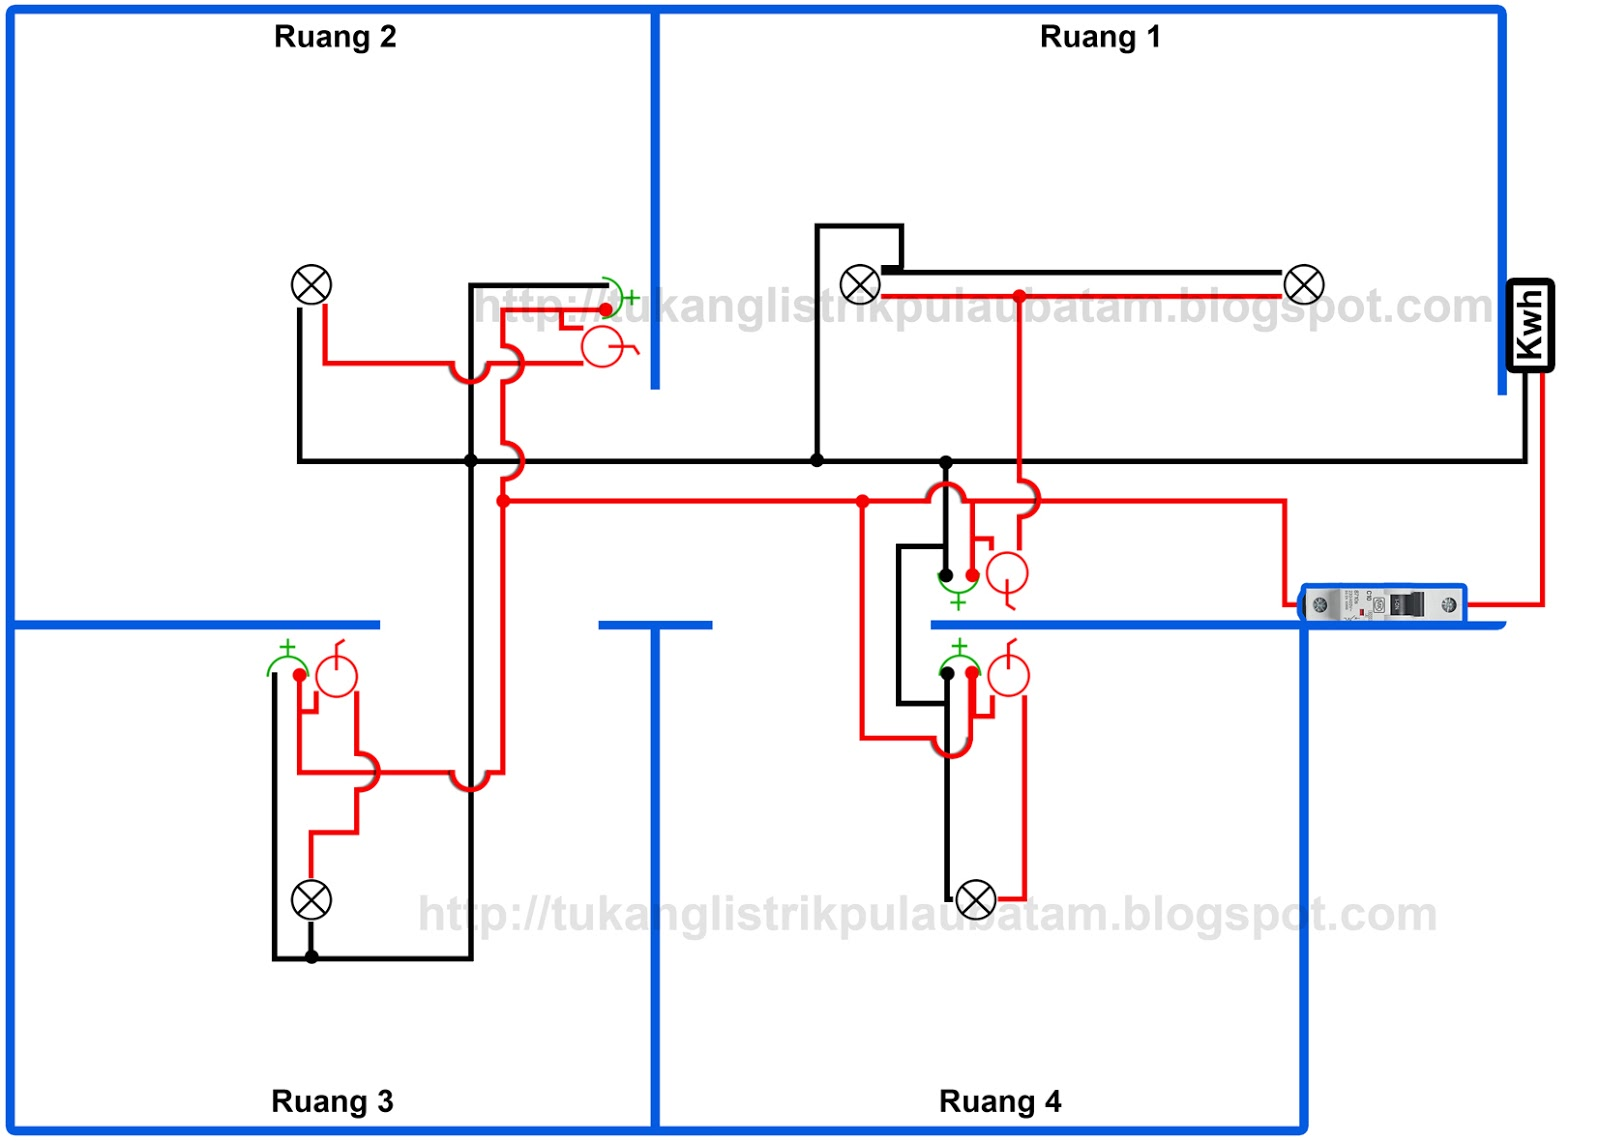 Wiring Diagram Rumah Good Place To Get Lampu Depan New Era Of U2022 Rh 07 Campusmater Com For Mahindra 4530